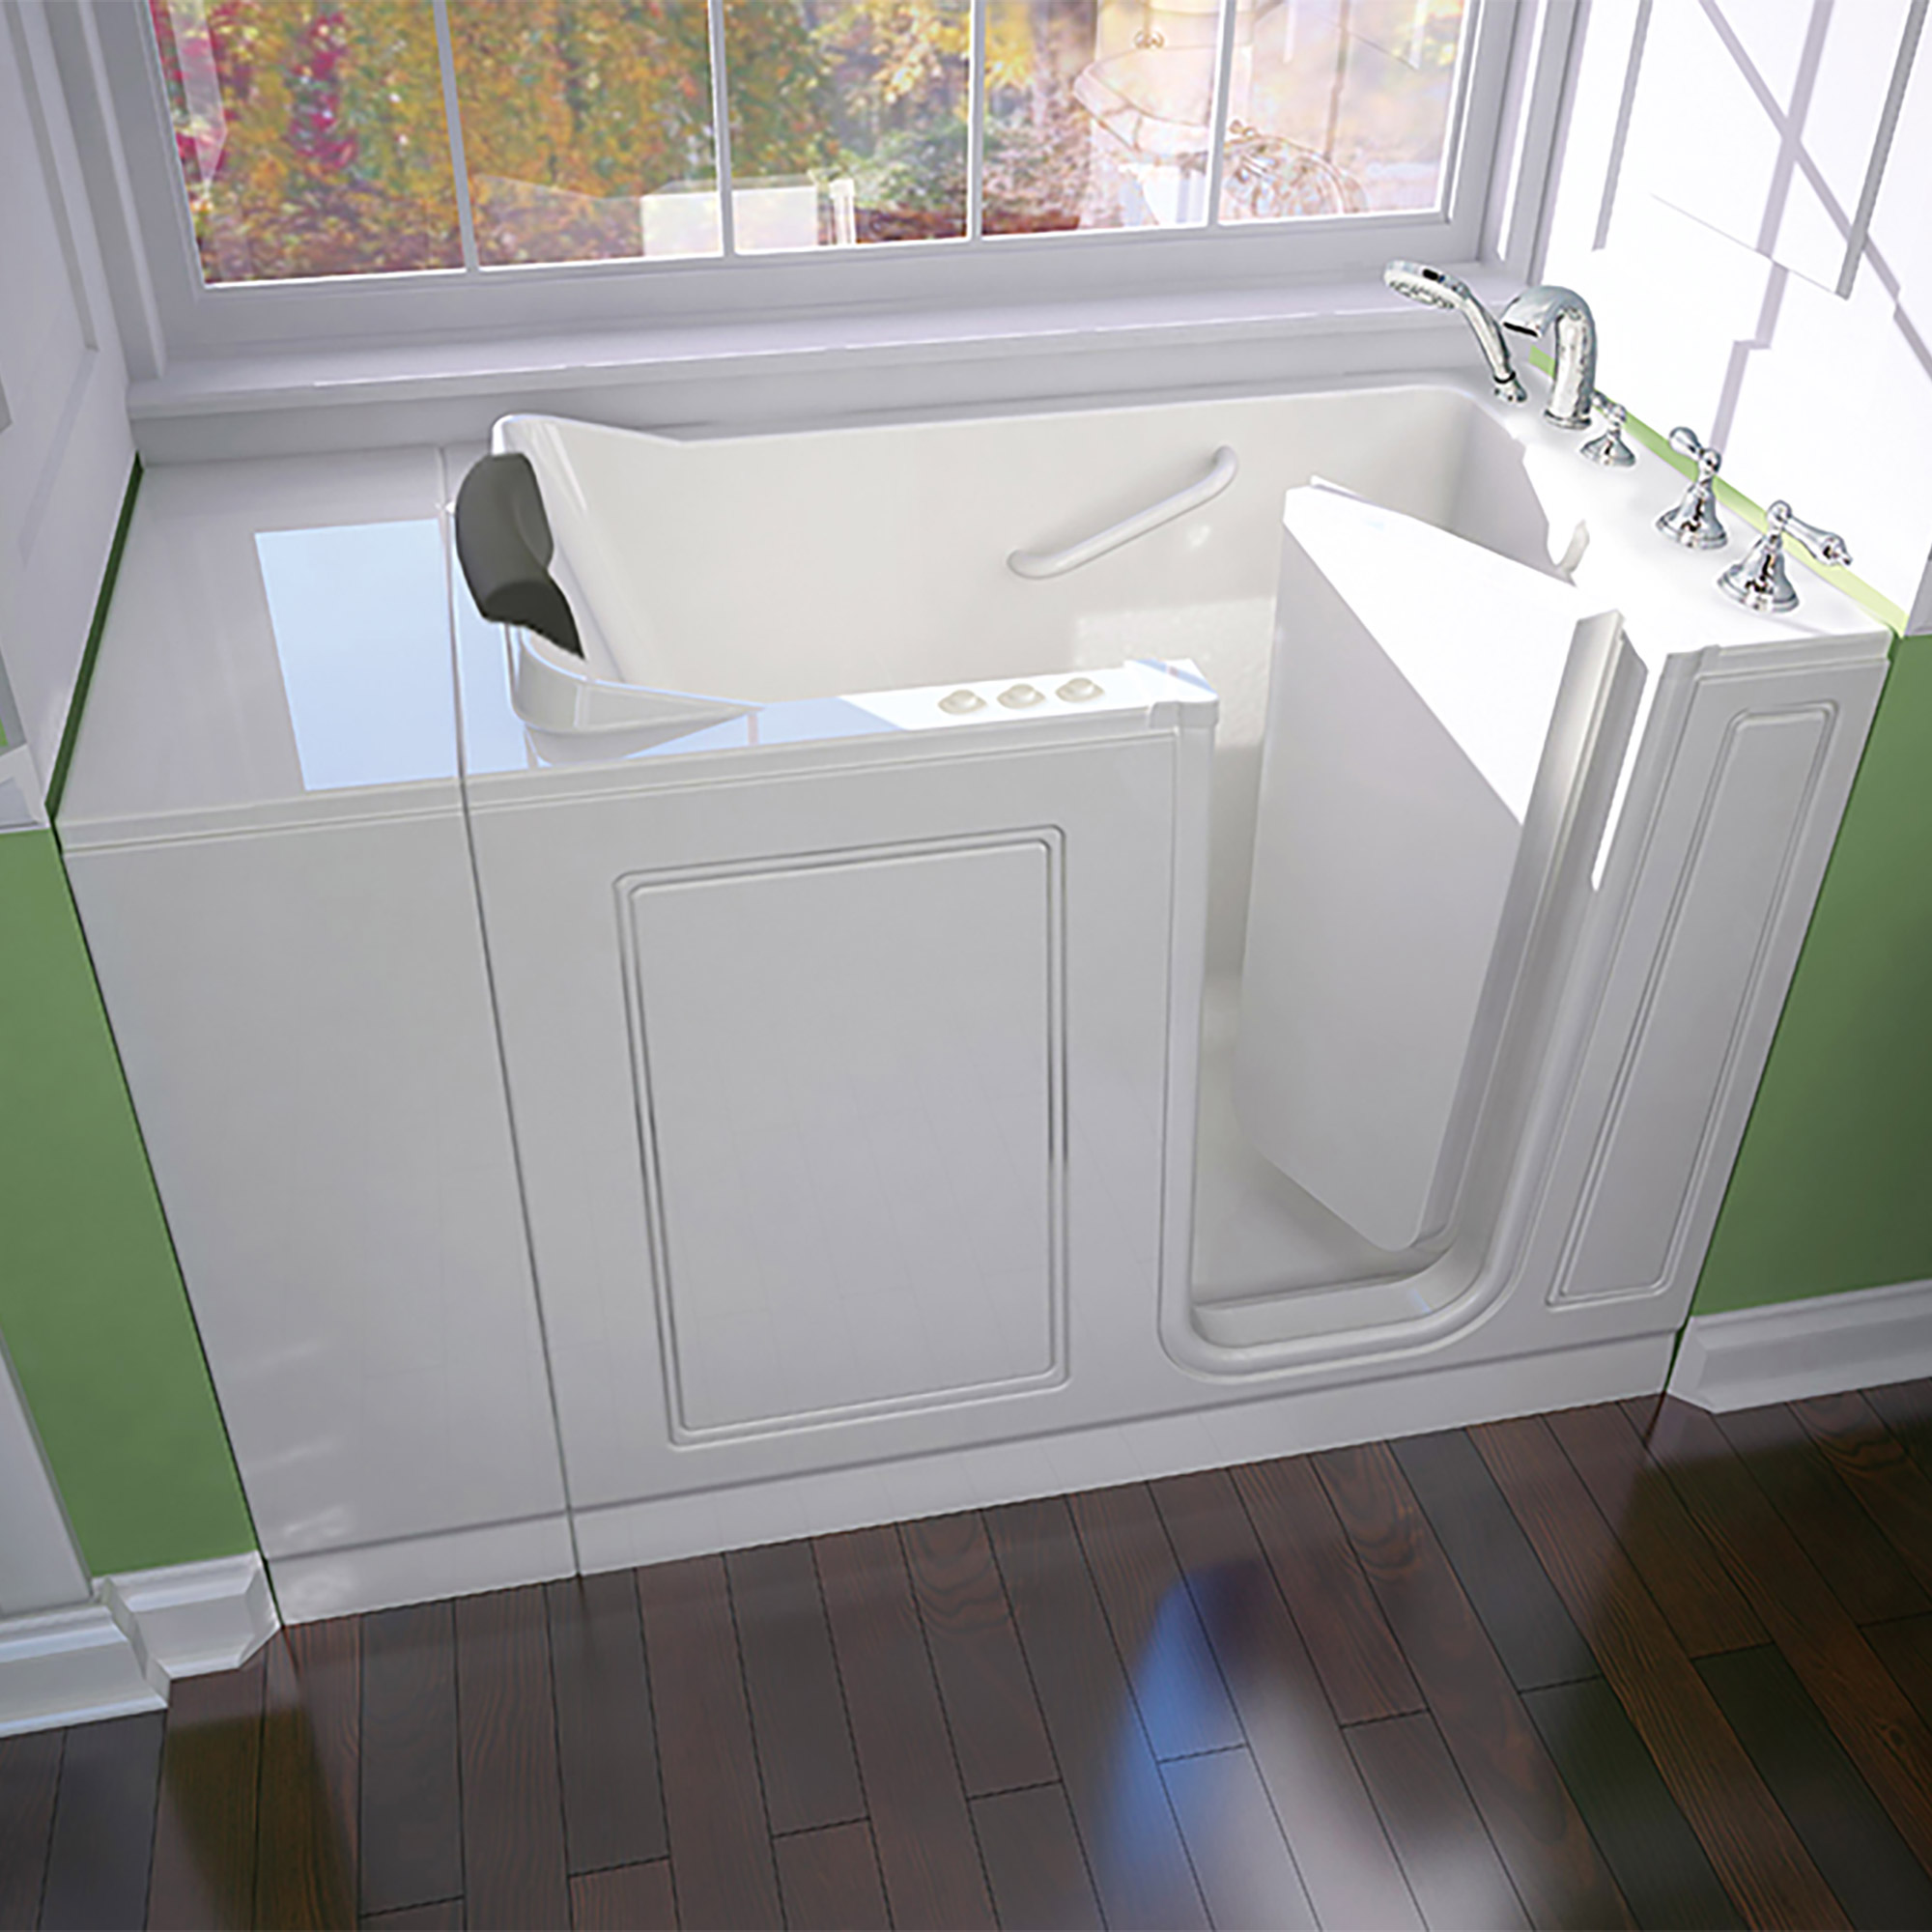 Walk-In Bathtubs: Do You Really Need One?